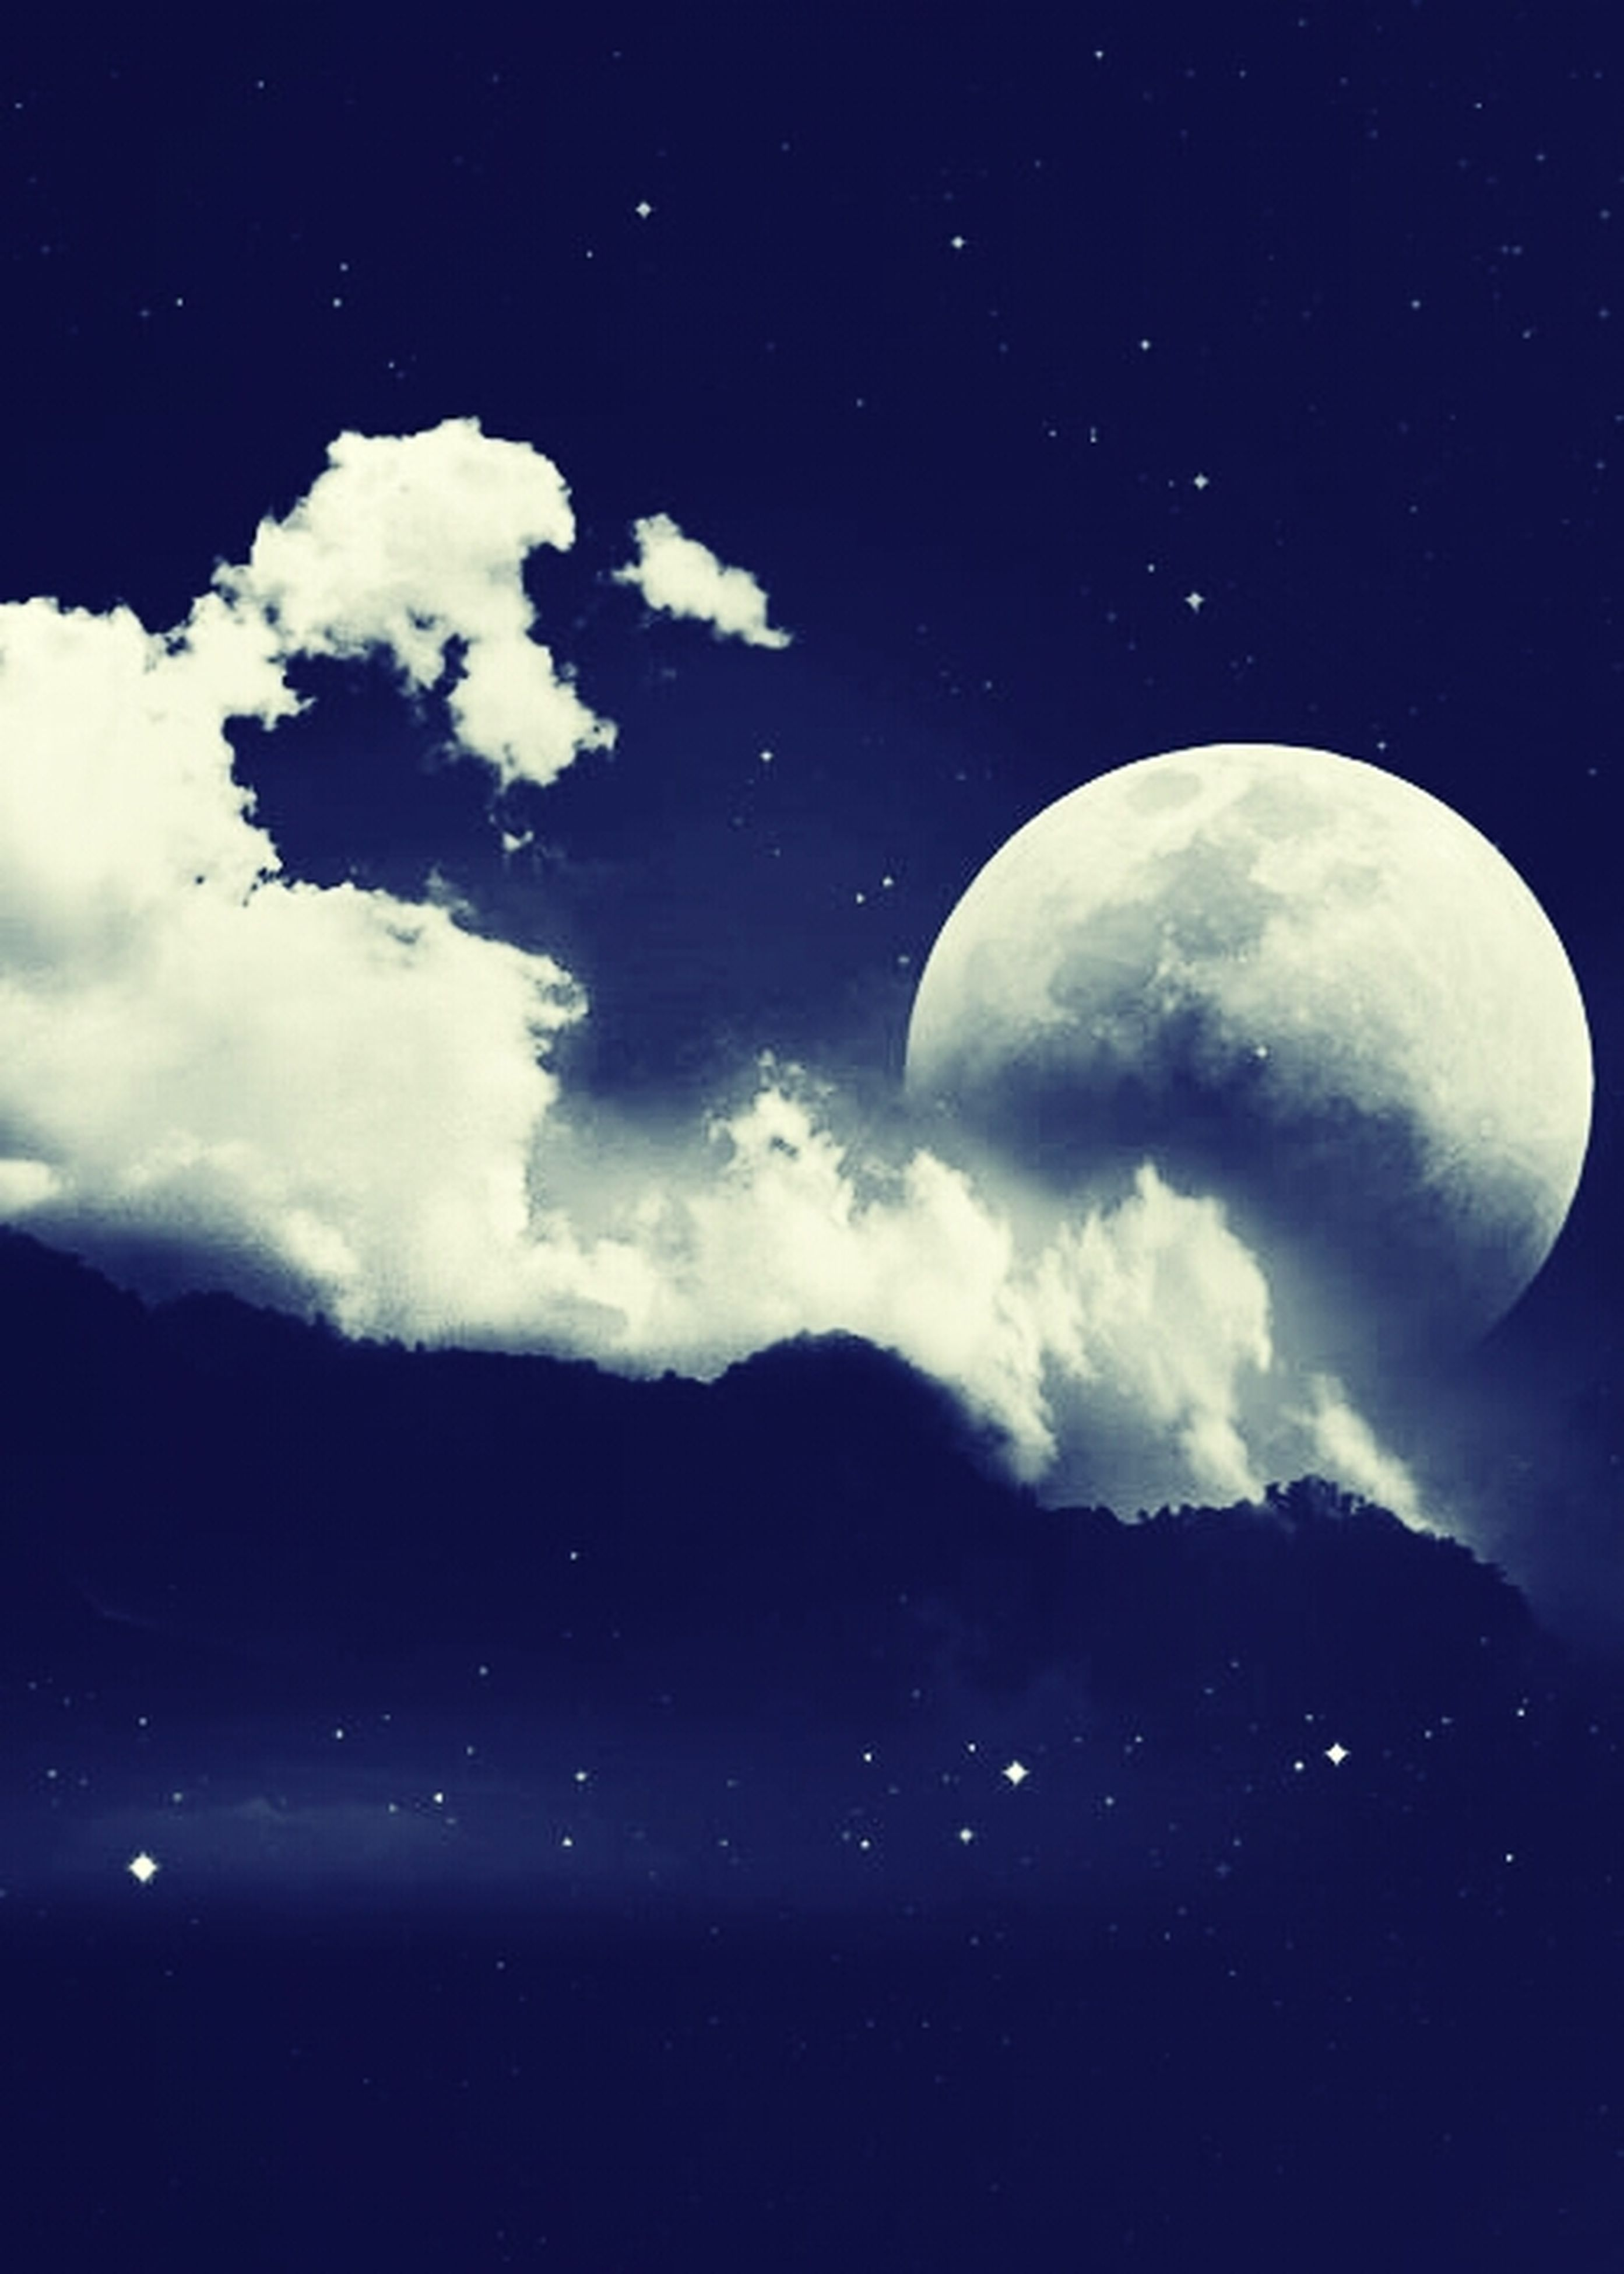 sky, moon, night, astronomy, scenics, low angle view, tranquility, beauty in nature, tranquil scene, full moon, nature, cloud - sky, space exploration, planetary moon, majestic, idyllic, dark, space, outdoors, discovery